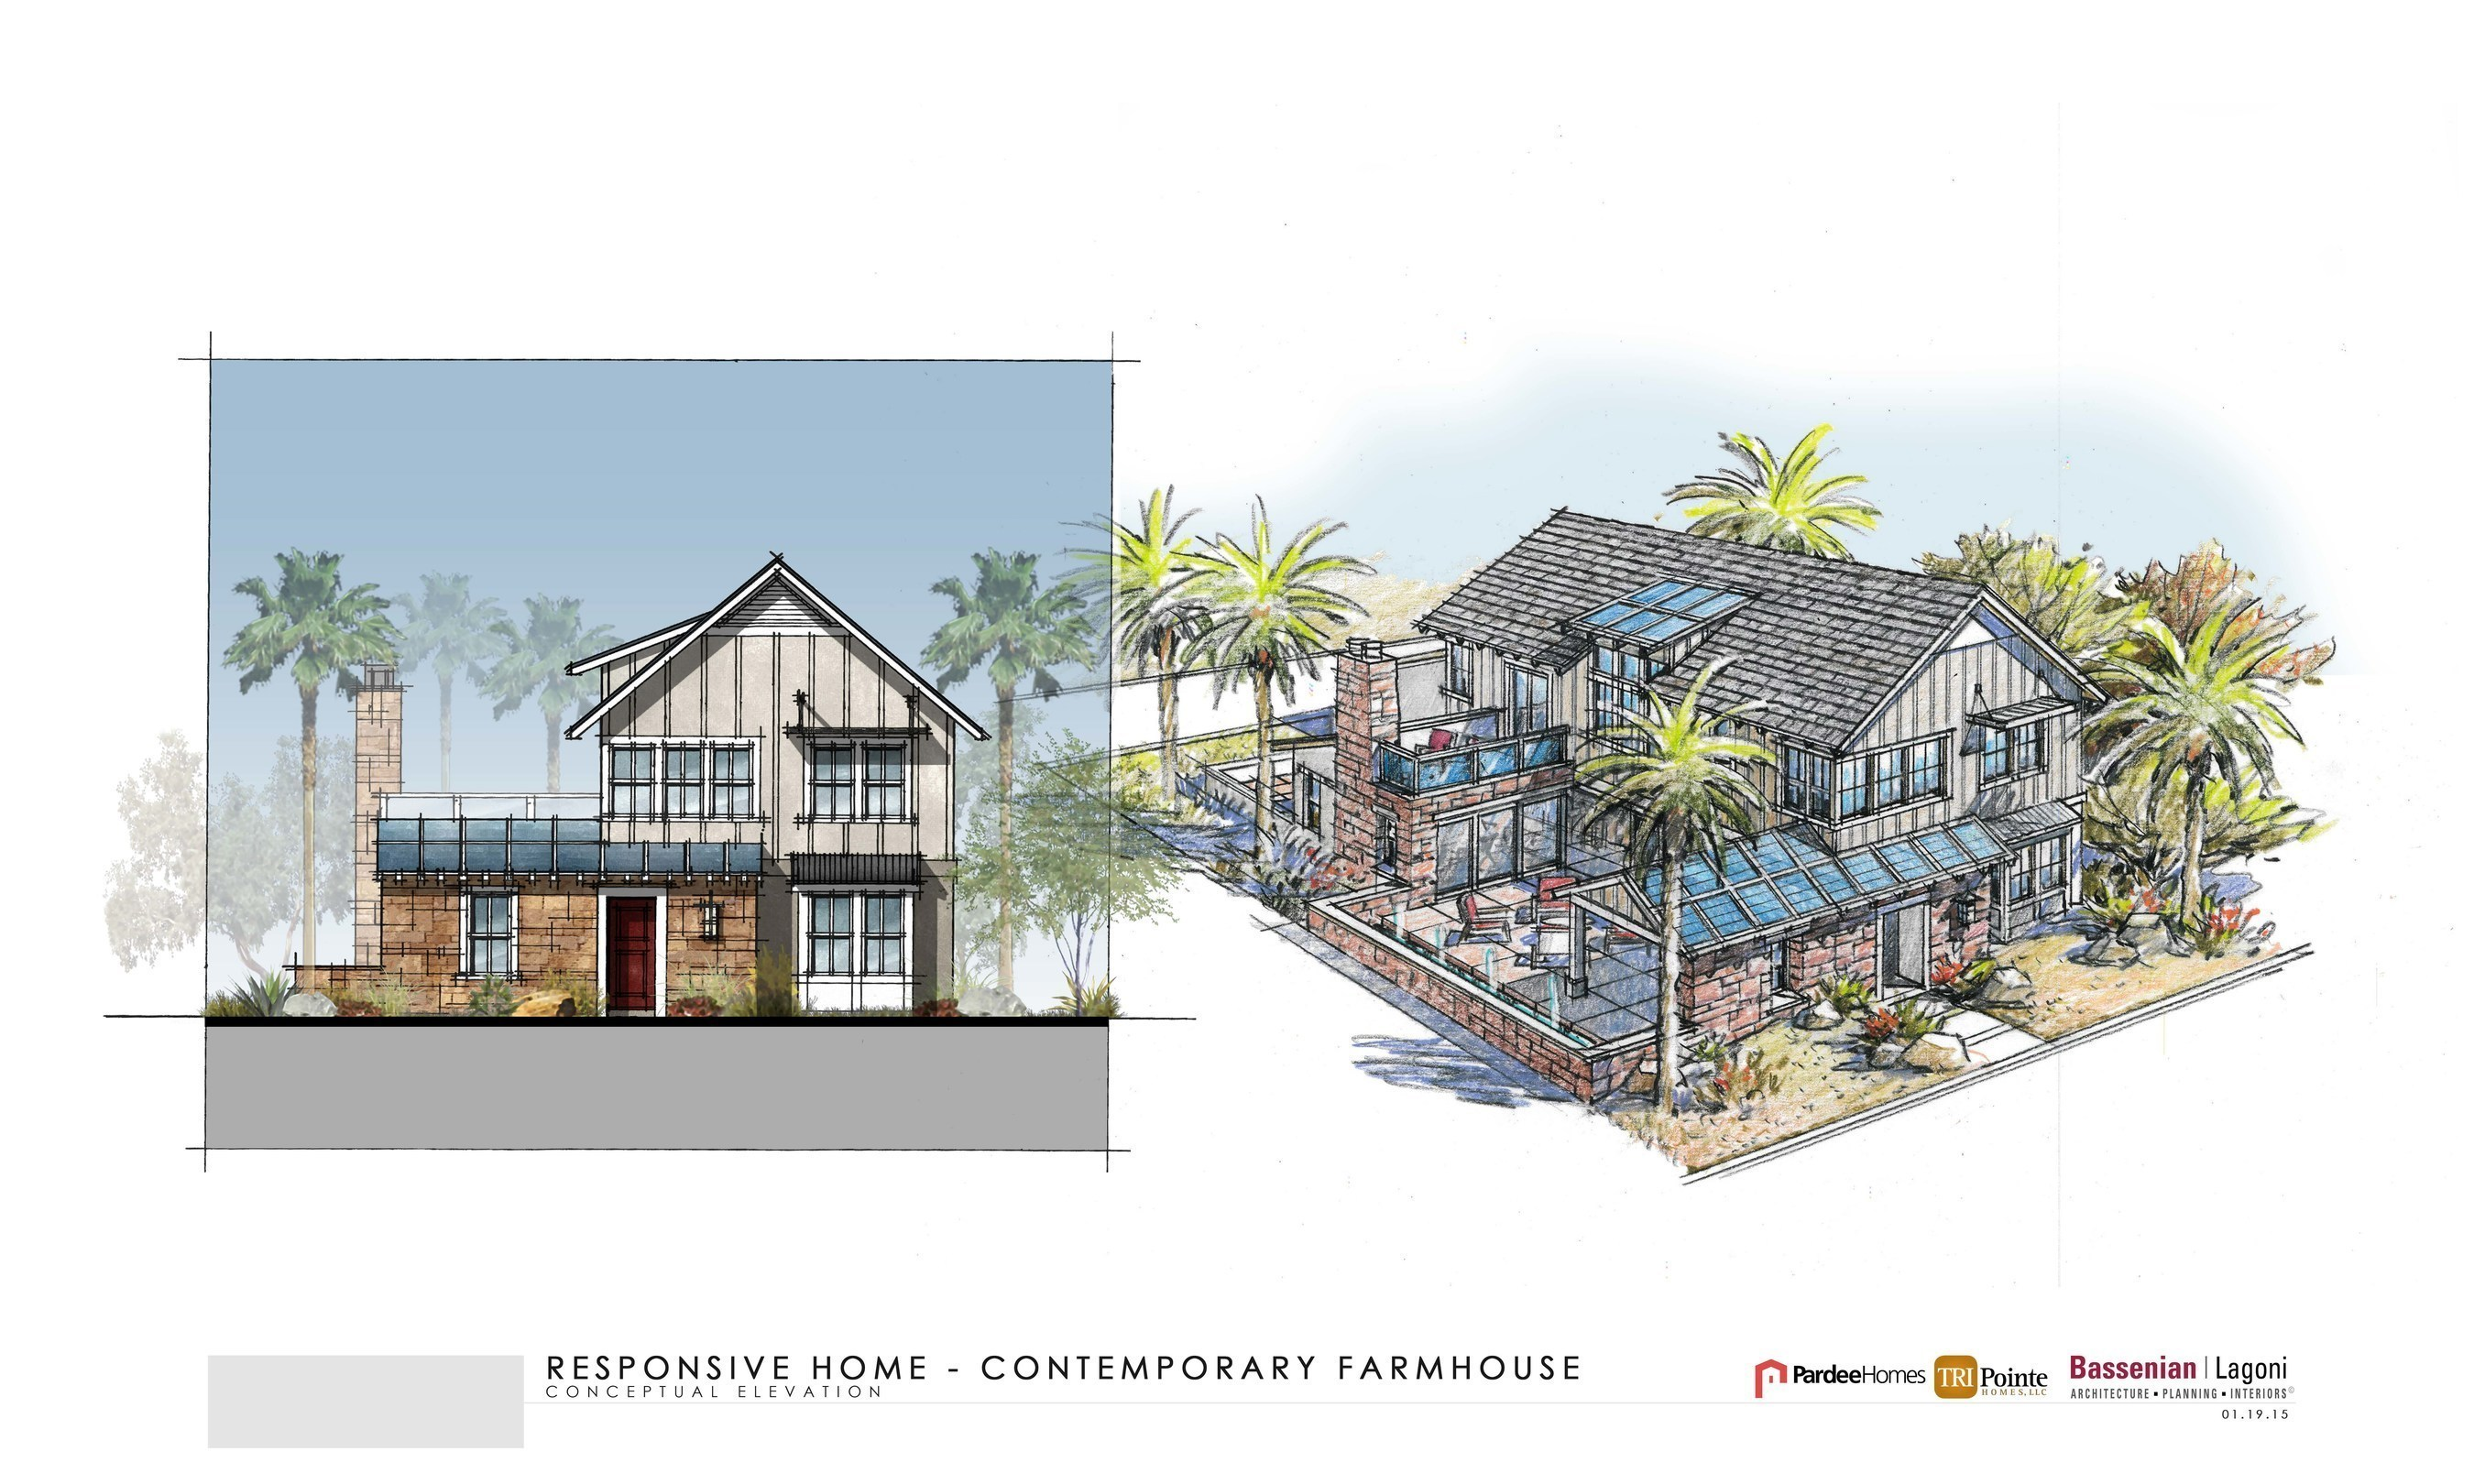 Responsive Home - Contemporary Farmhouse Rendering